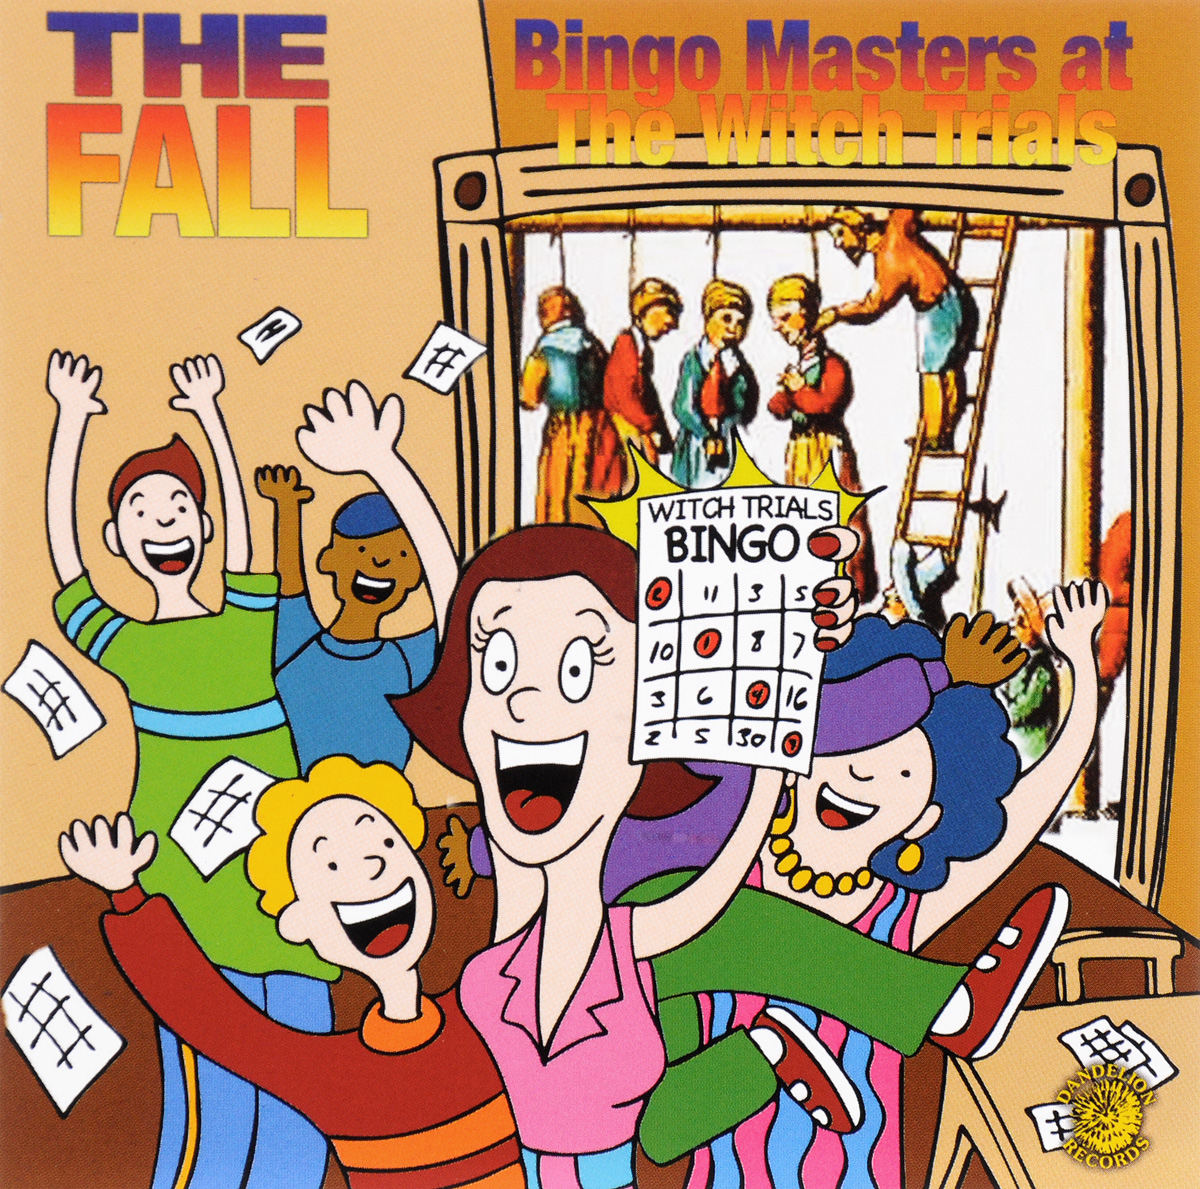 The Fall Fall. Bingo Masters At Witch Trials